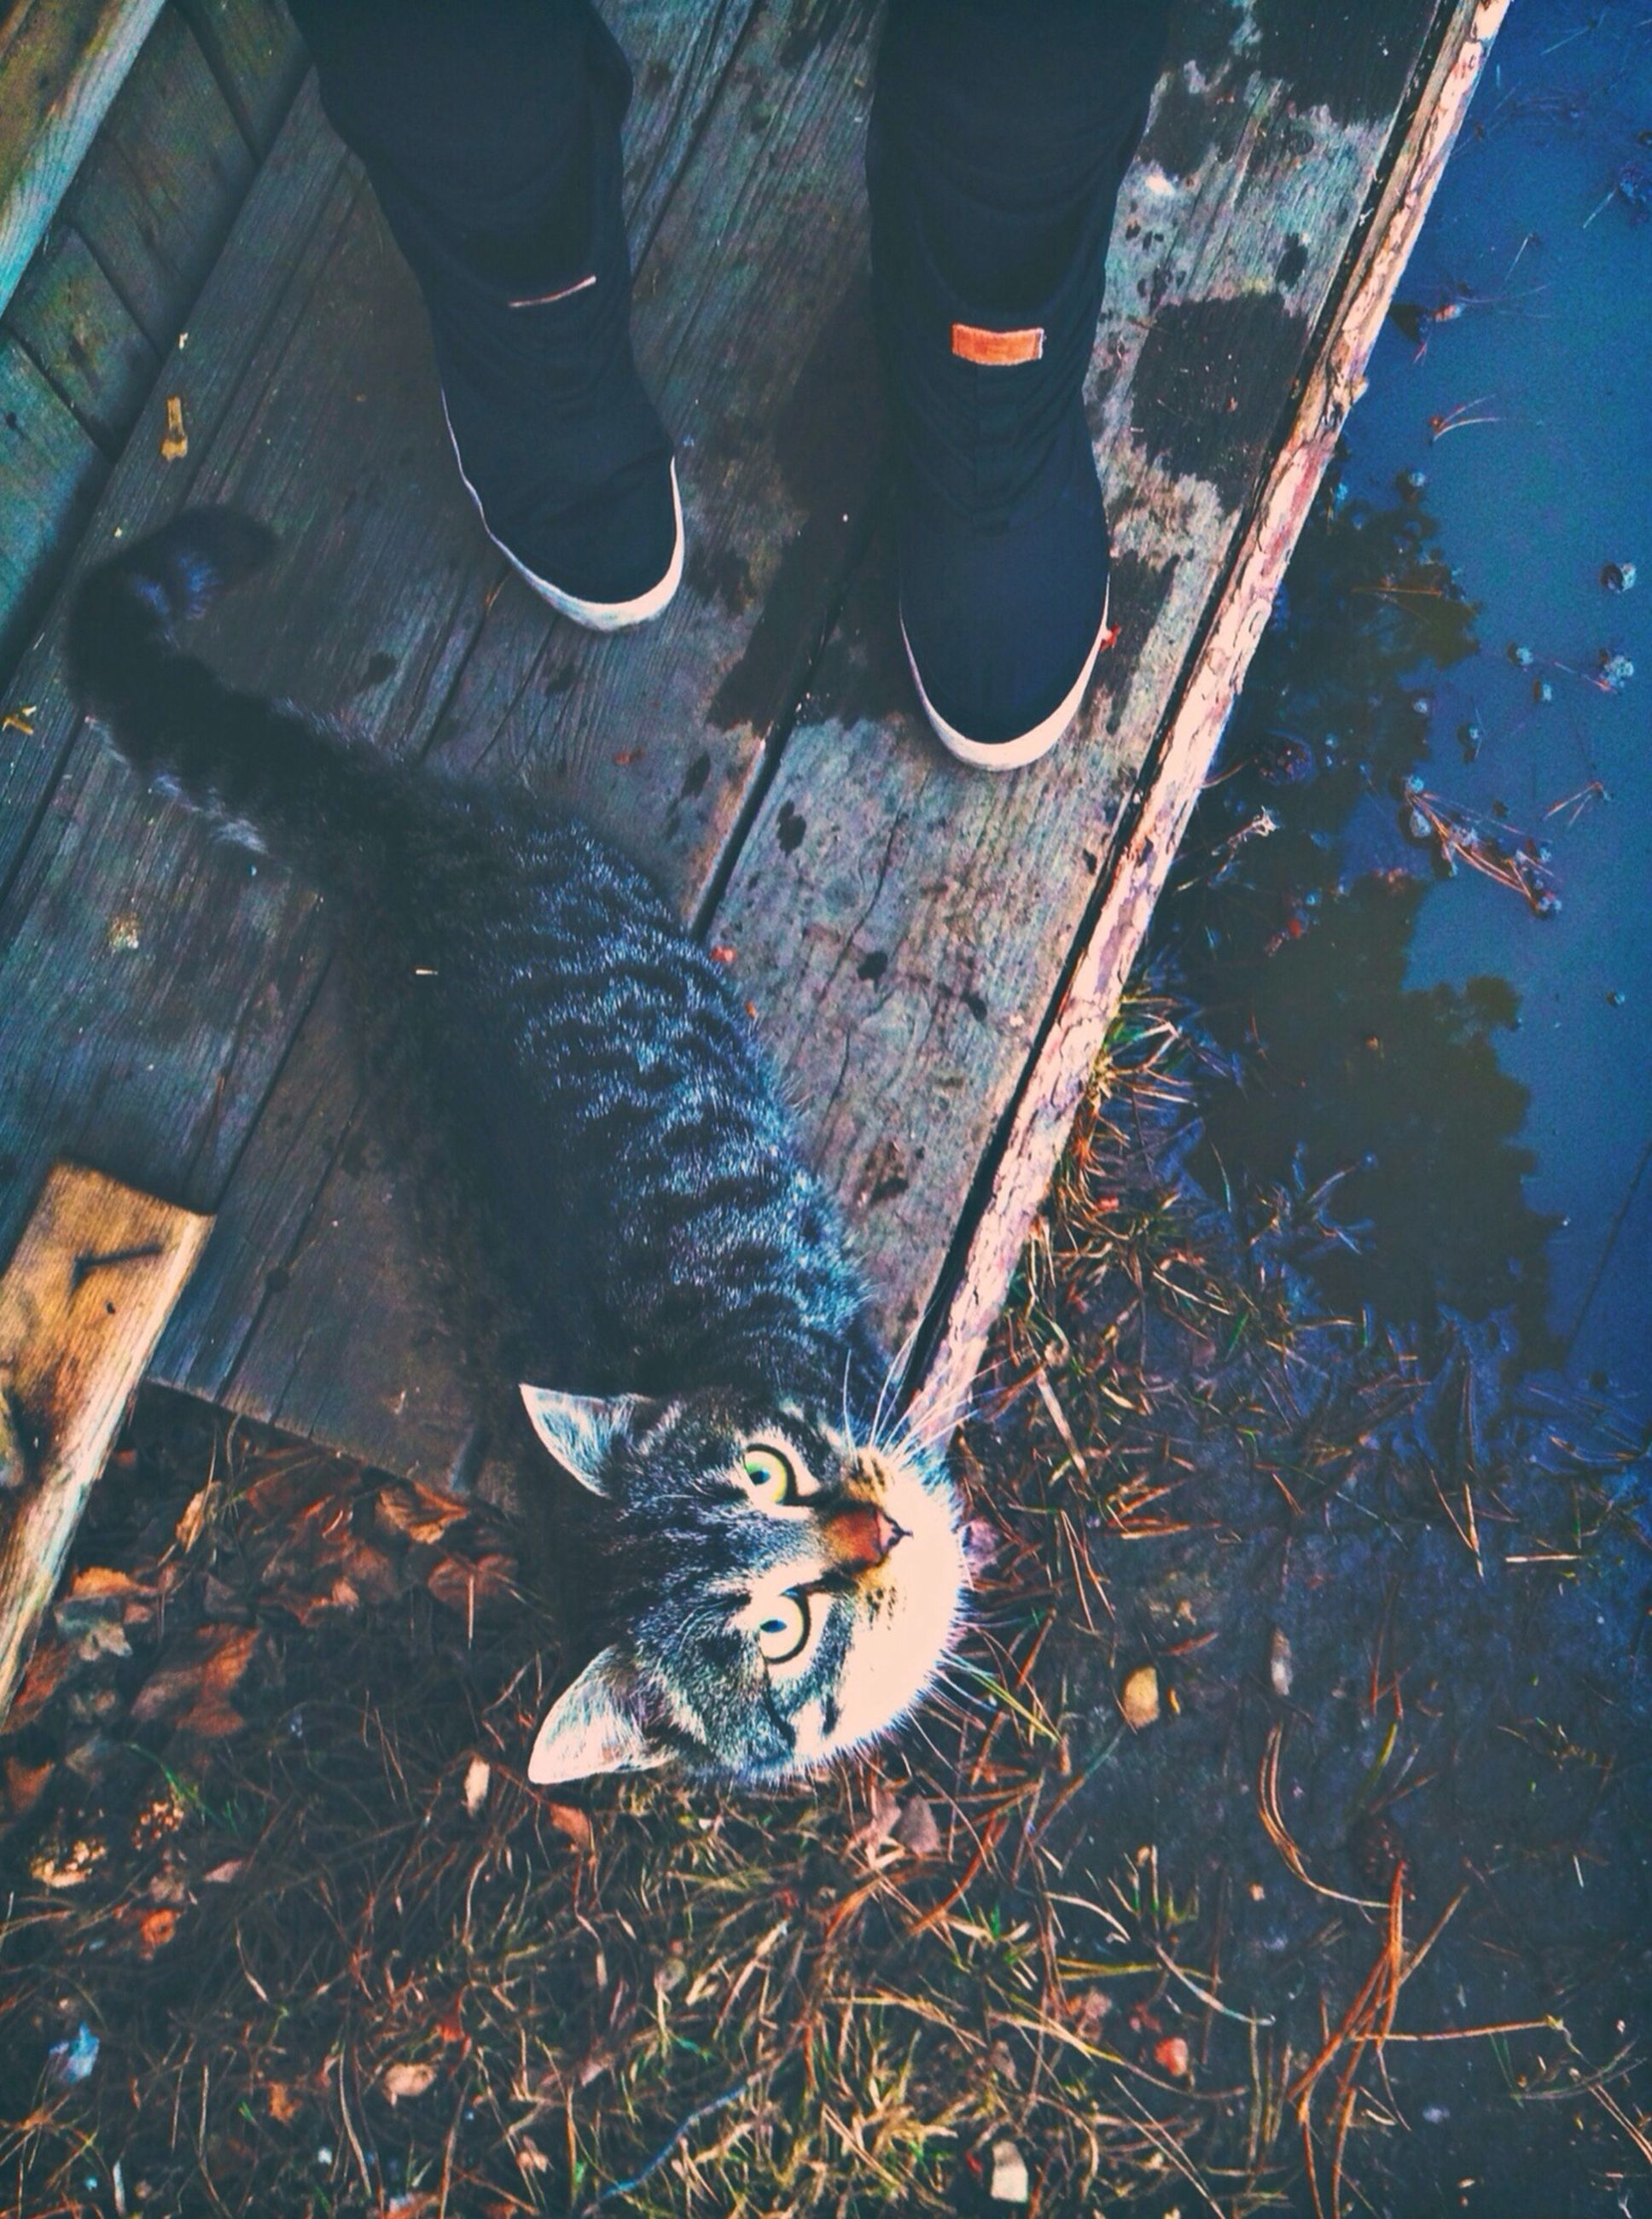 animal themes, high angle view, one animal, low section, domestic animals, shoe, pets, person, street, mammal, outdoors, standing, day, dog, footwear, domestic cat, sunlight, sidewalk